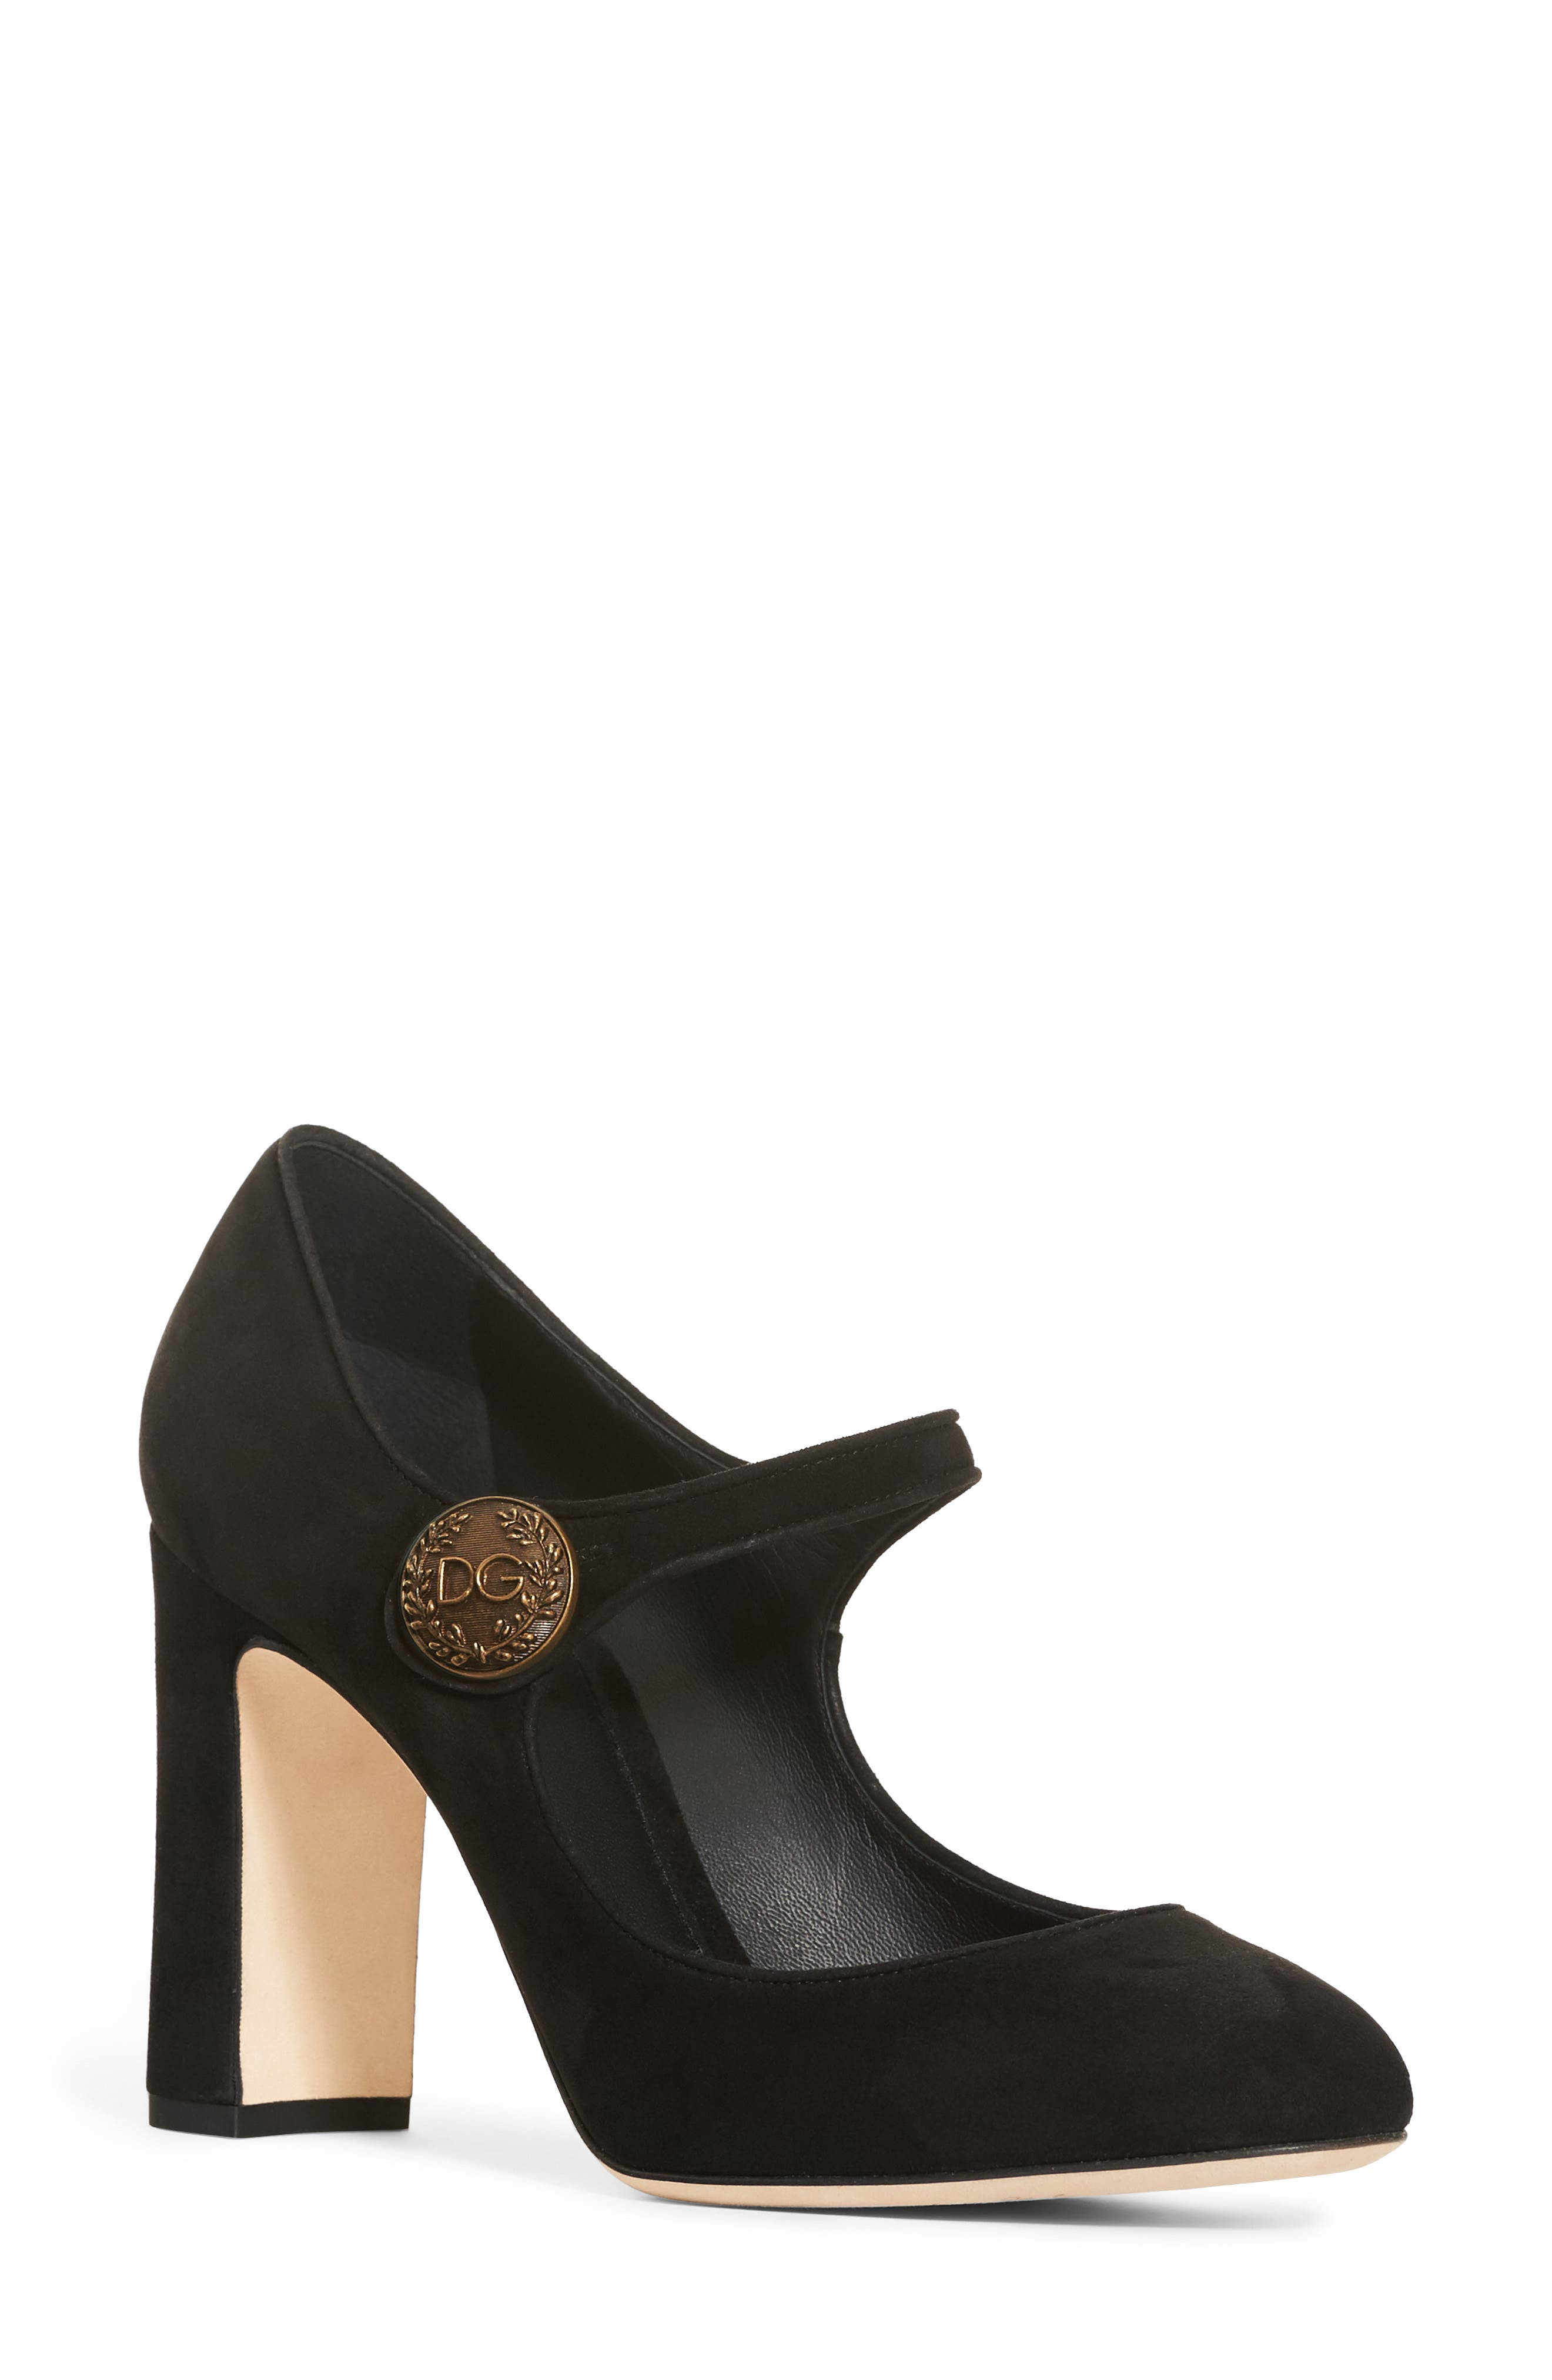 Button Mary Jane Pump,                         Main,                         color, 002